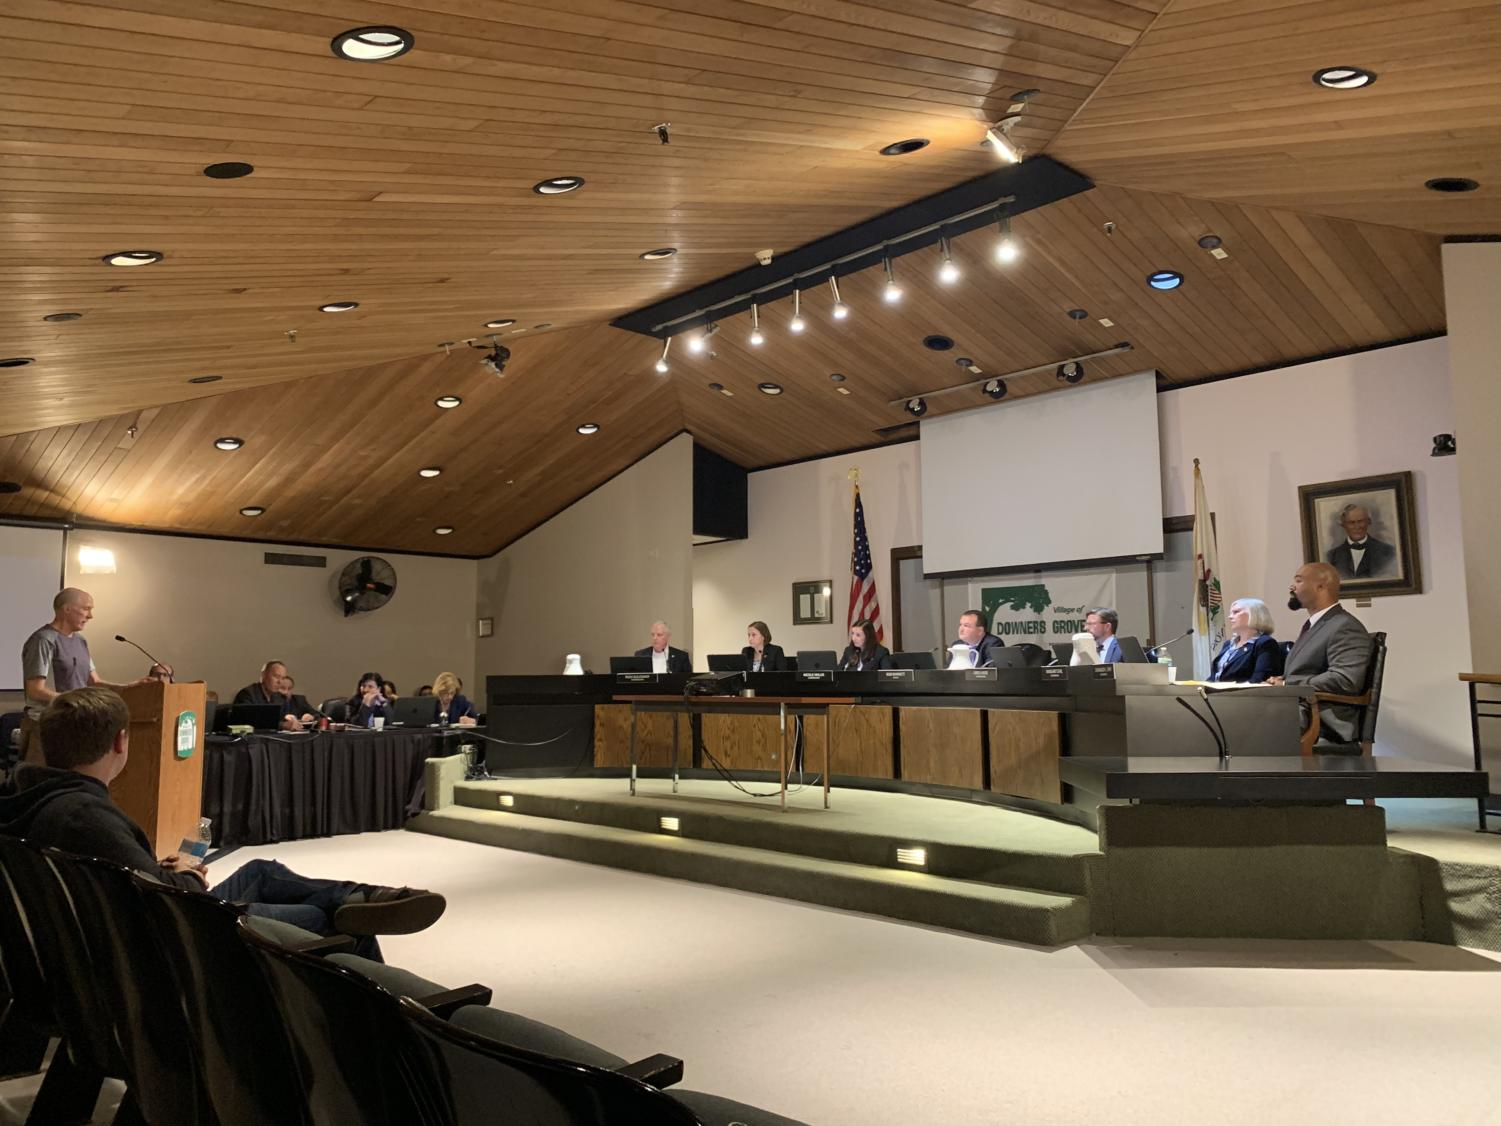 The Downers Grove Village Council listens as local residents share their thoughts on whether or not the village should opt out of selling recreational marijuana.